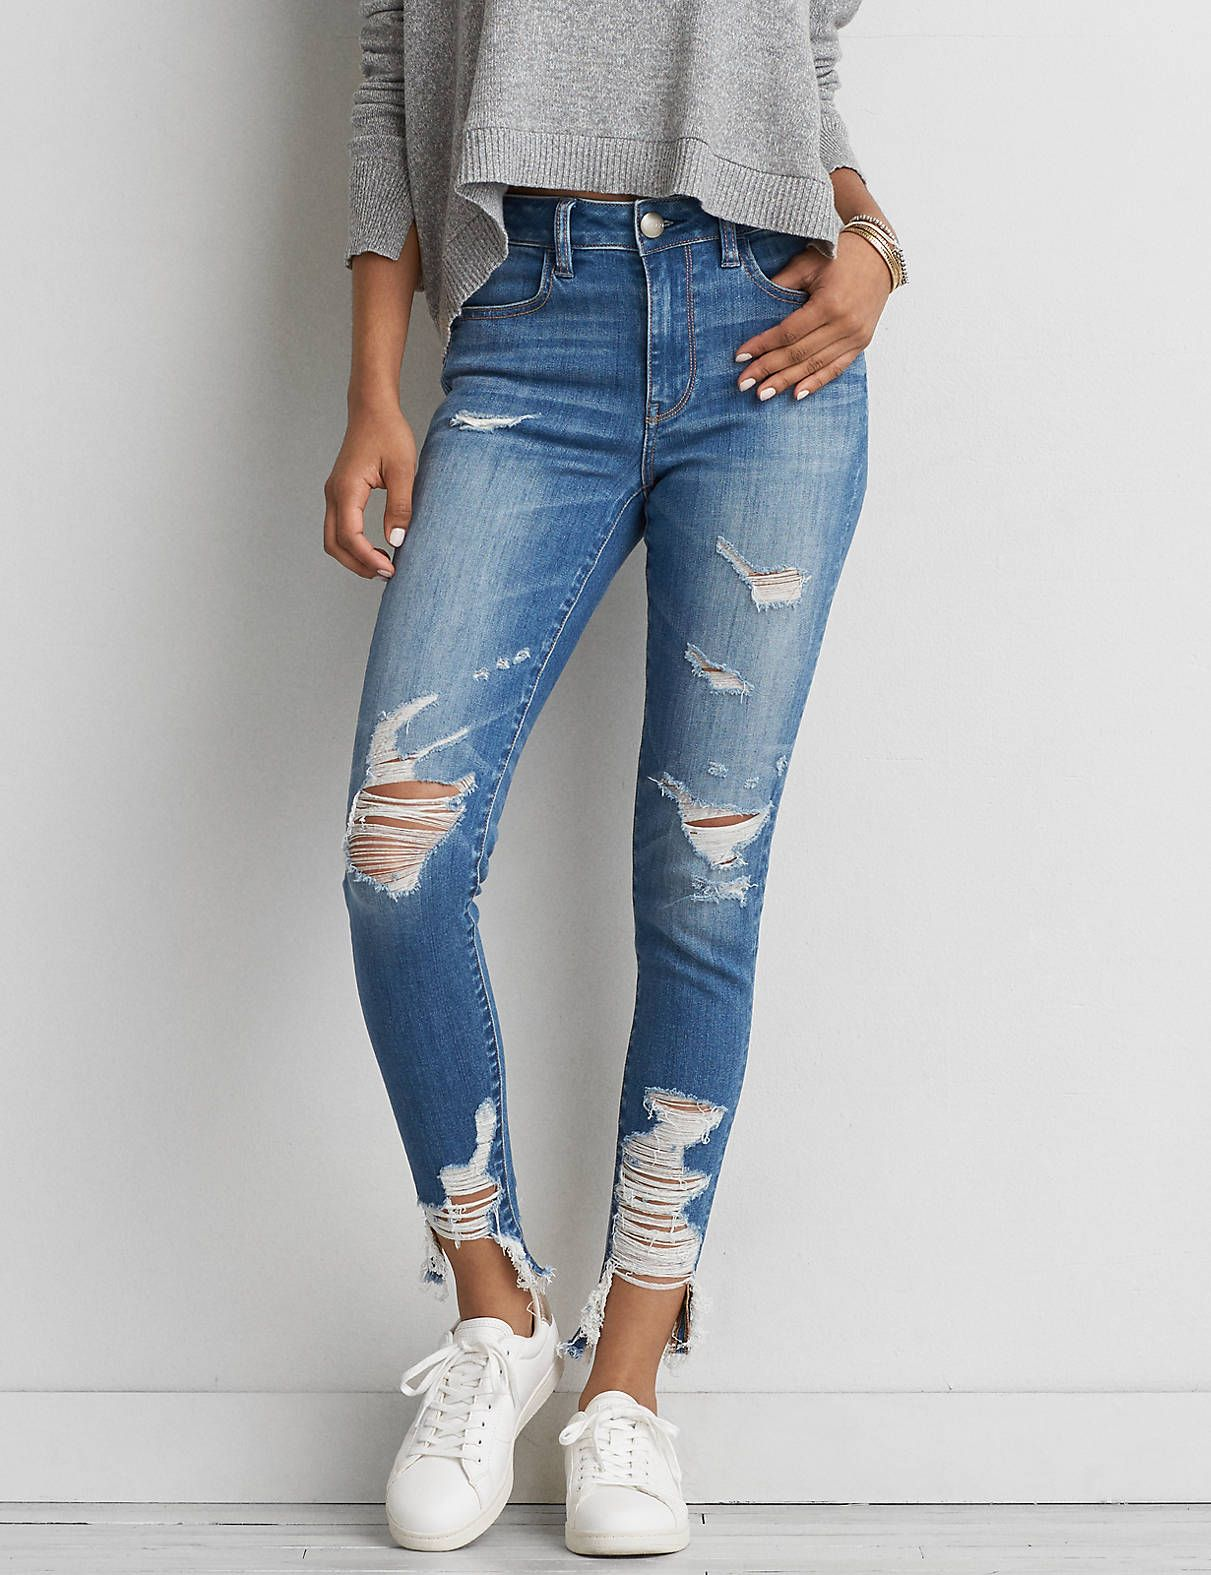 Shop American Eagle Outfitters for men's and women's jeans ...